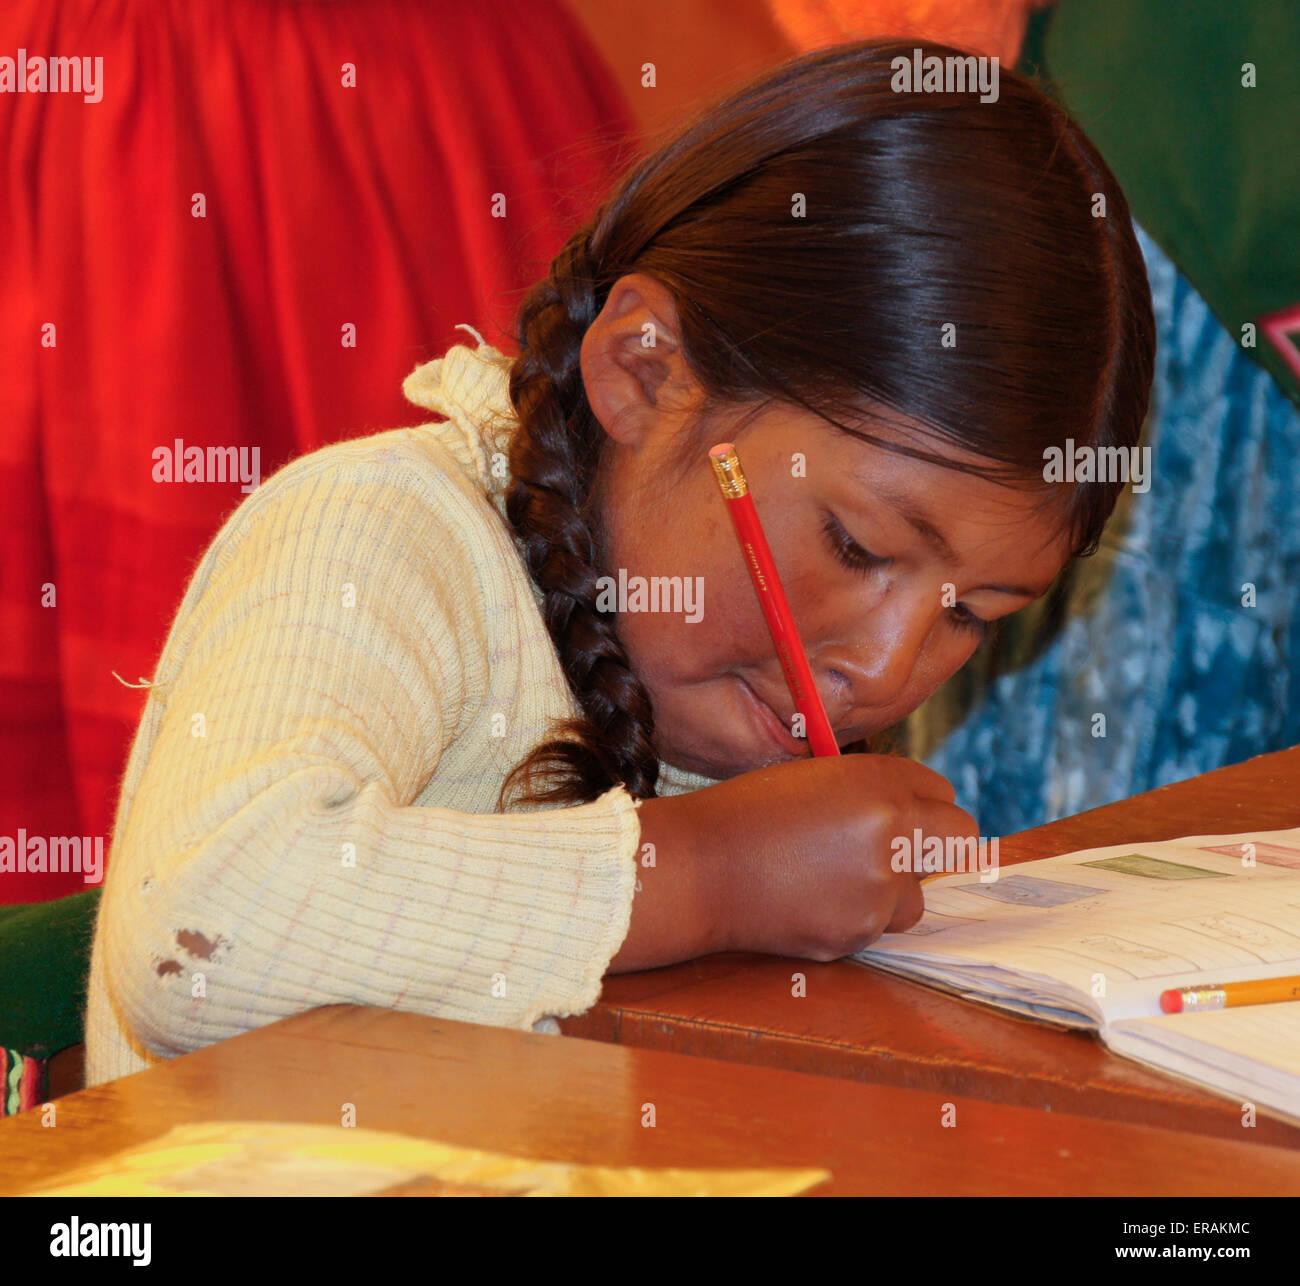 Young Uros Indian girl in classroom, Lake Titicaca, Puno, Peru - Stock Image